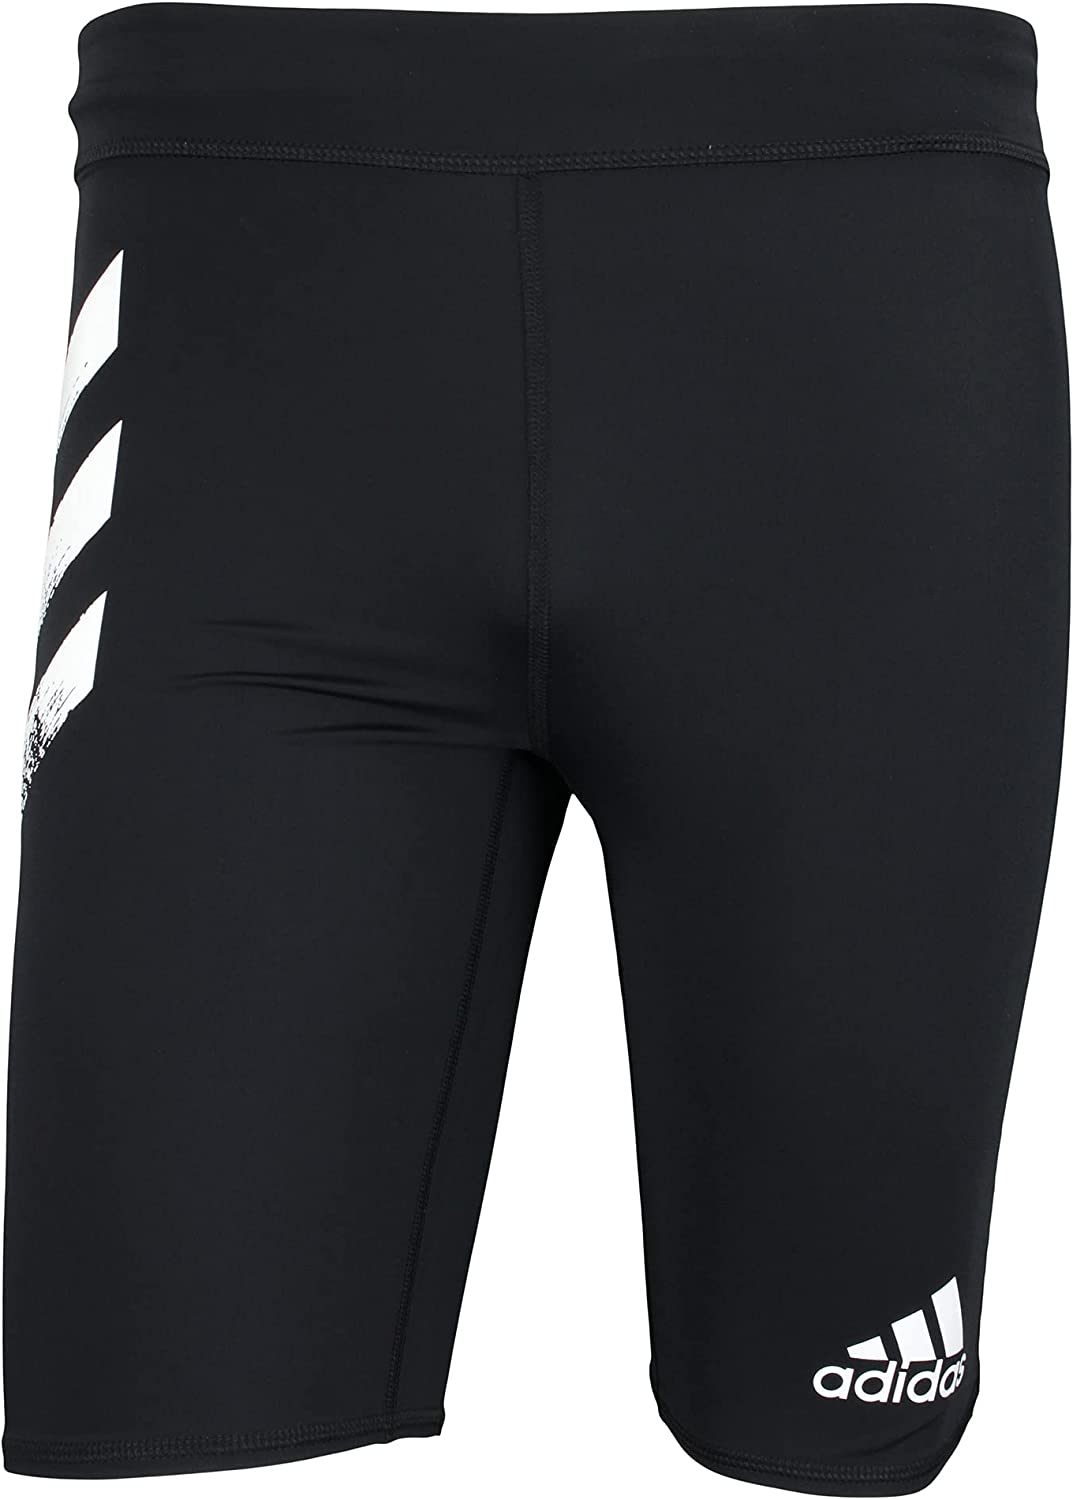 adidas NEW before selling Men's Adizero Shorts Compression Running Max 41% OFF